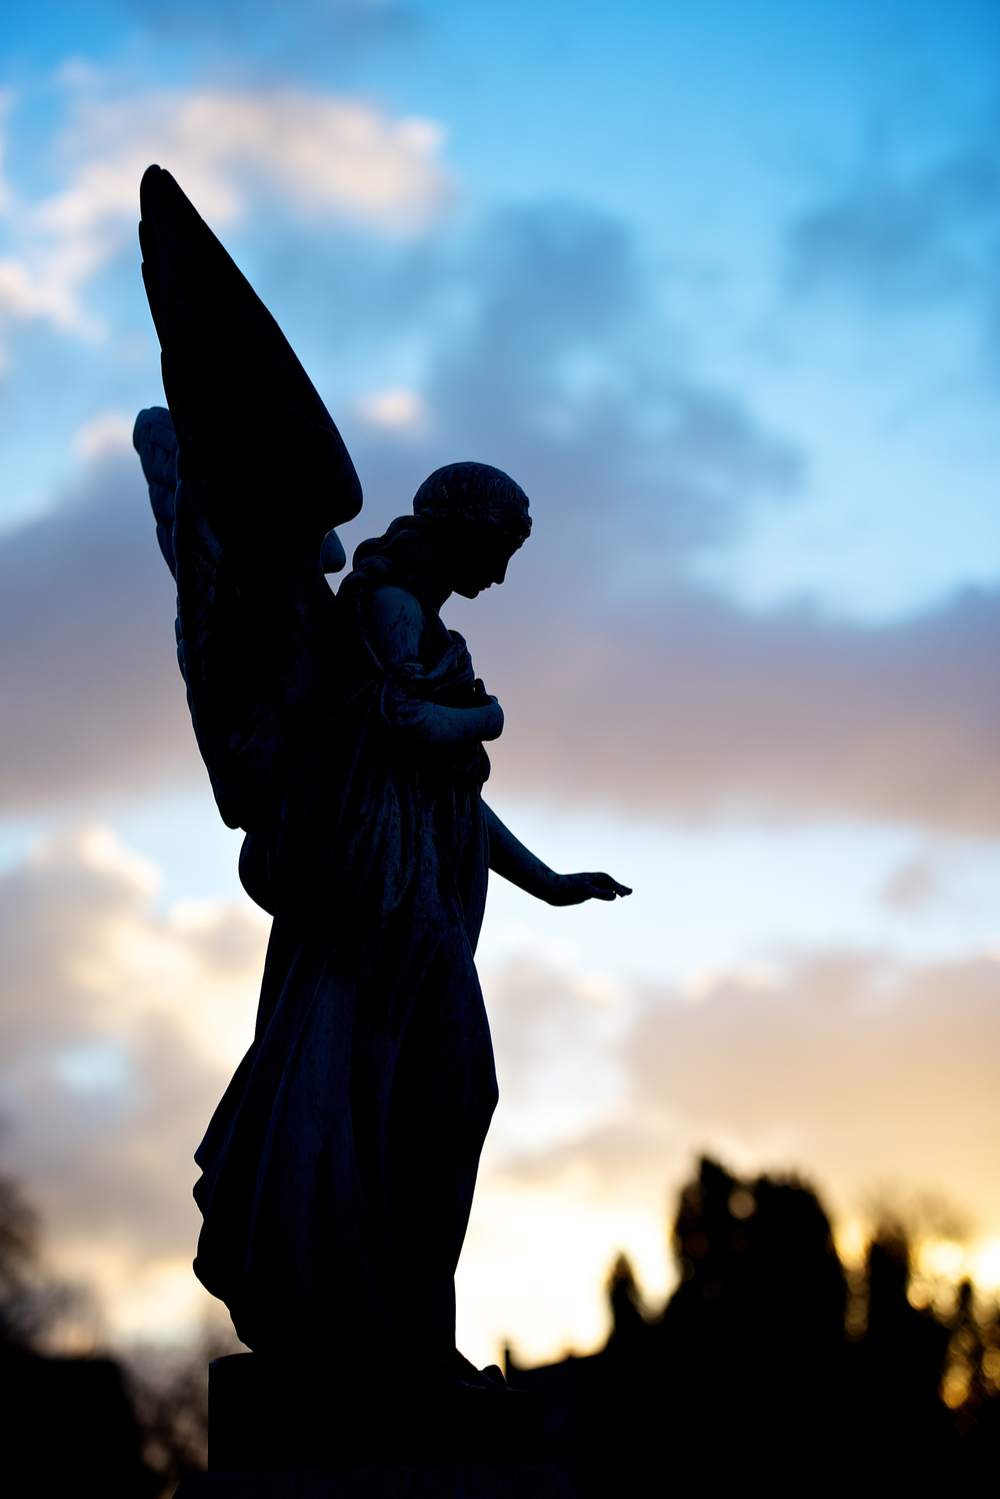 The statue of an angel at sunset with the sky lit up, and the statue in shadow.